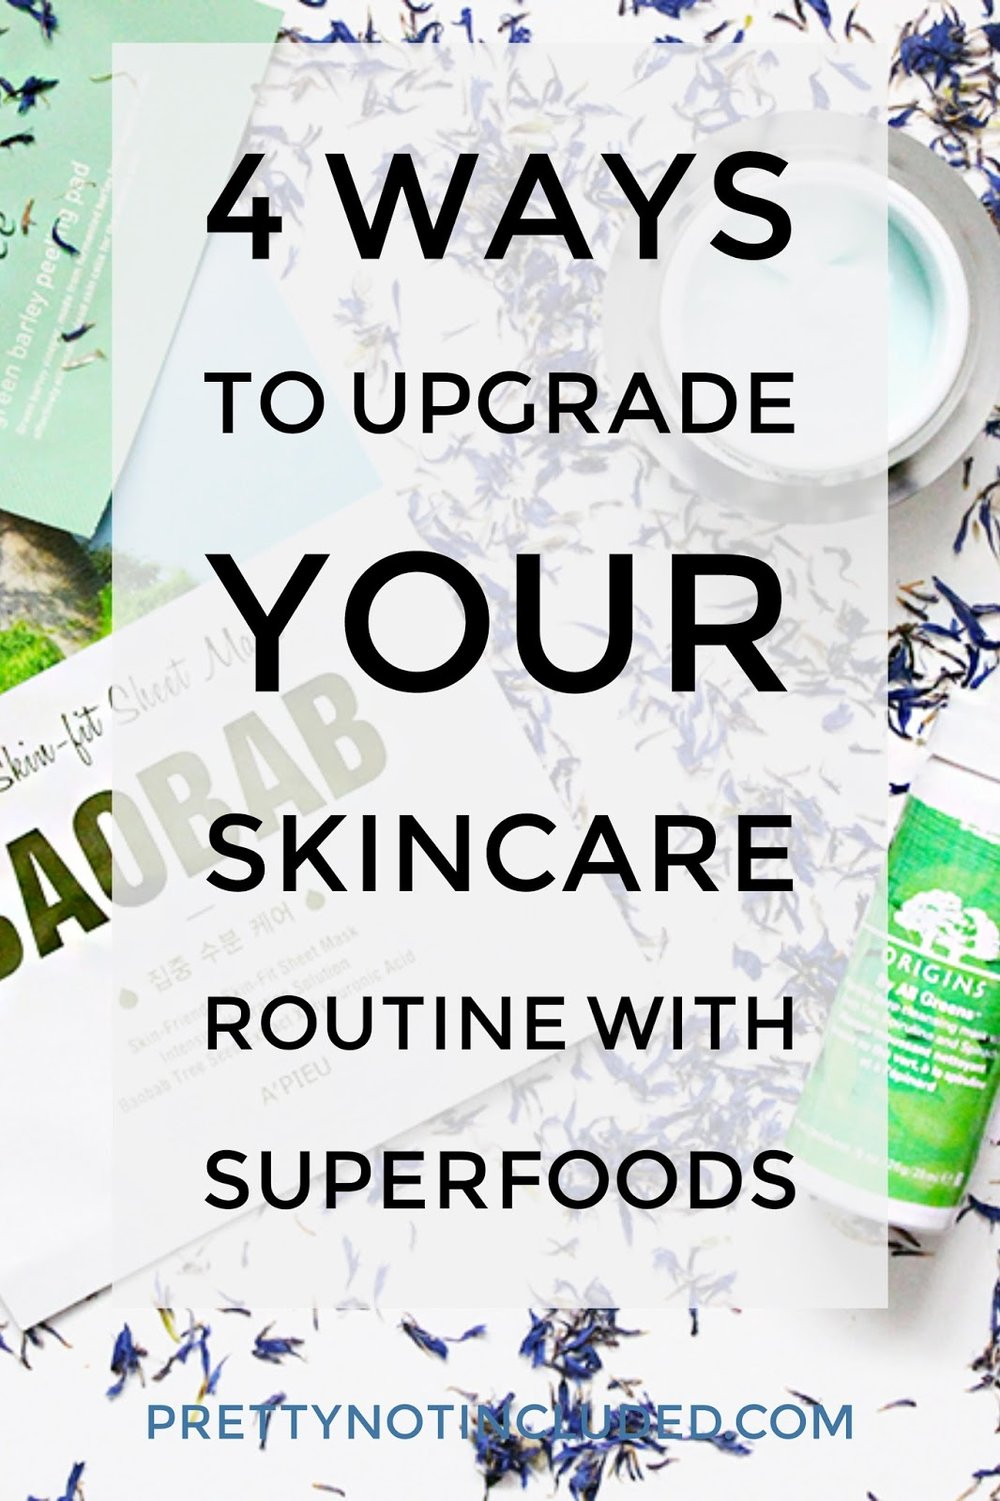 4 WAYS TO UPGRADE YOUR SKINCARE ROUTINE WITH SUPERFOODS